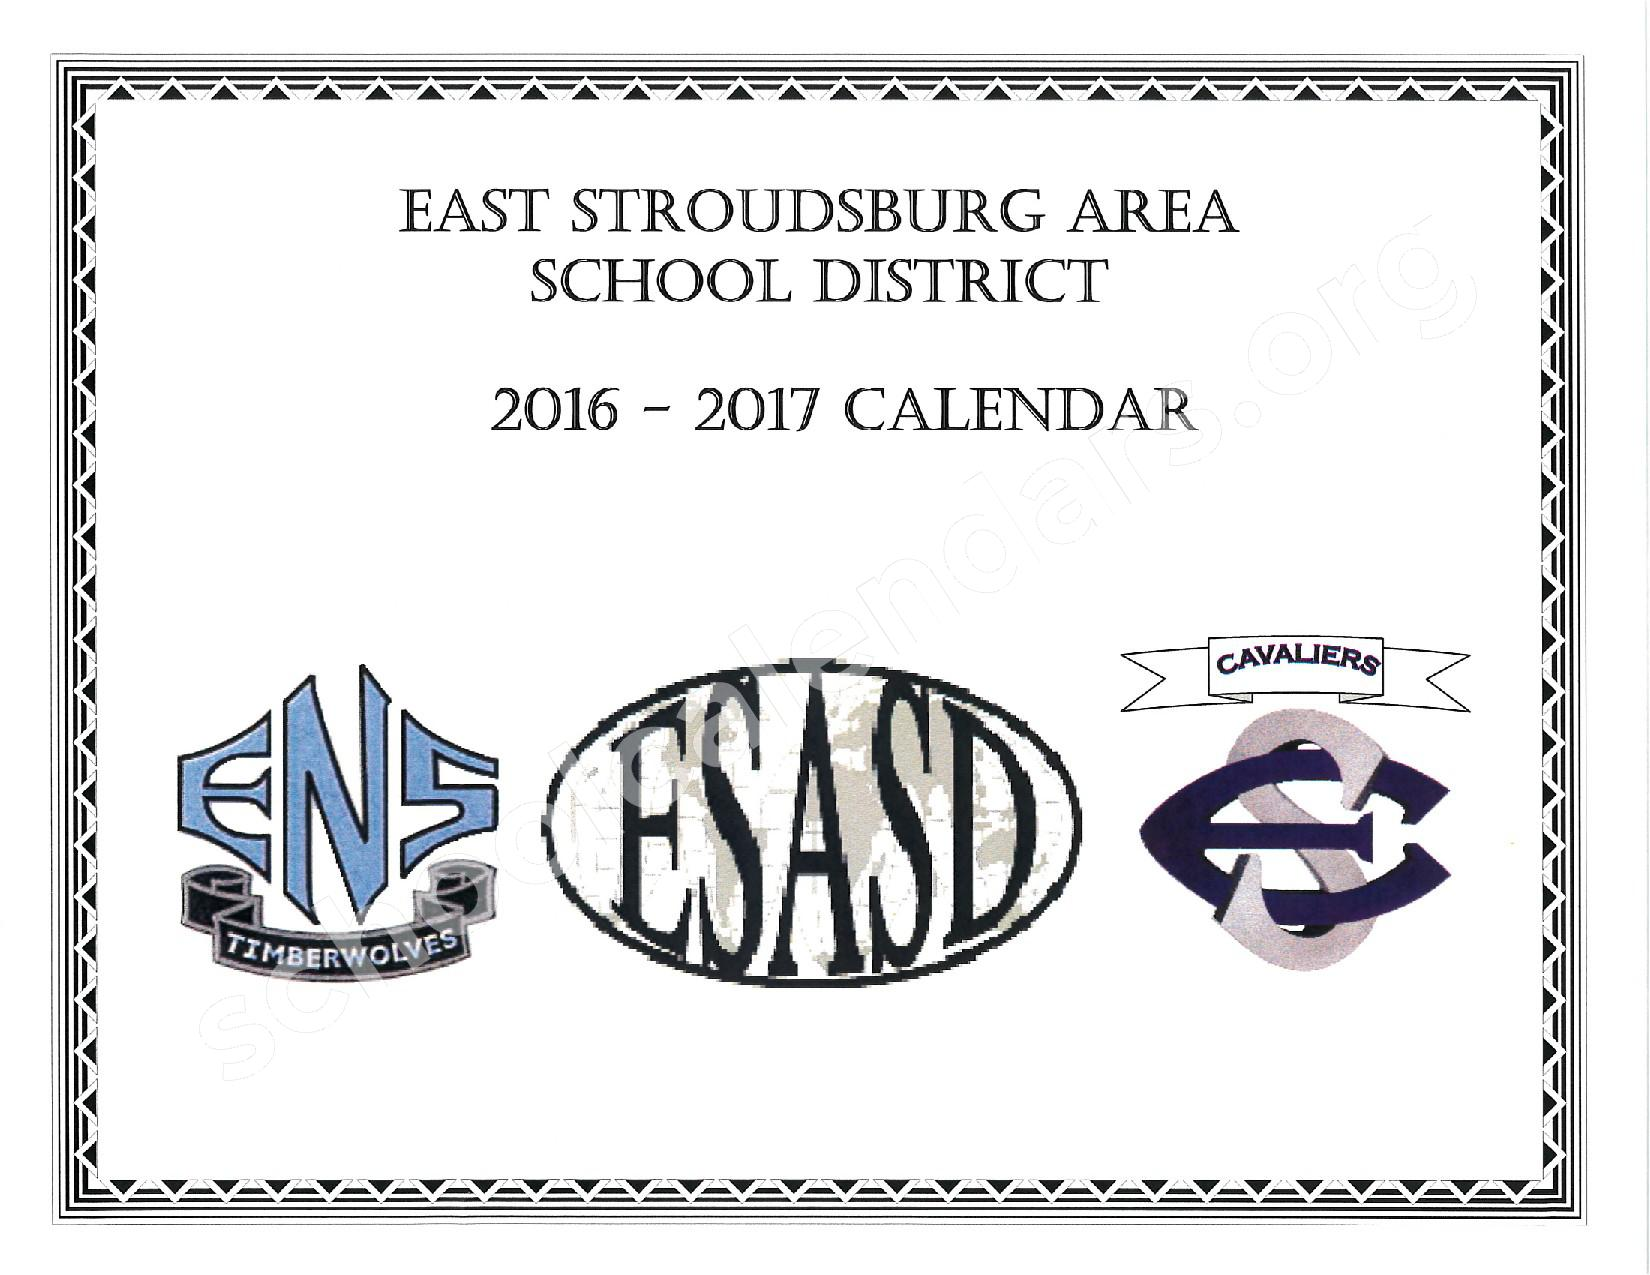 2016 - 2017 School Calendar – East Stroudsburg Senior High School North – page 1